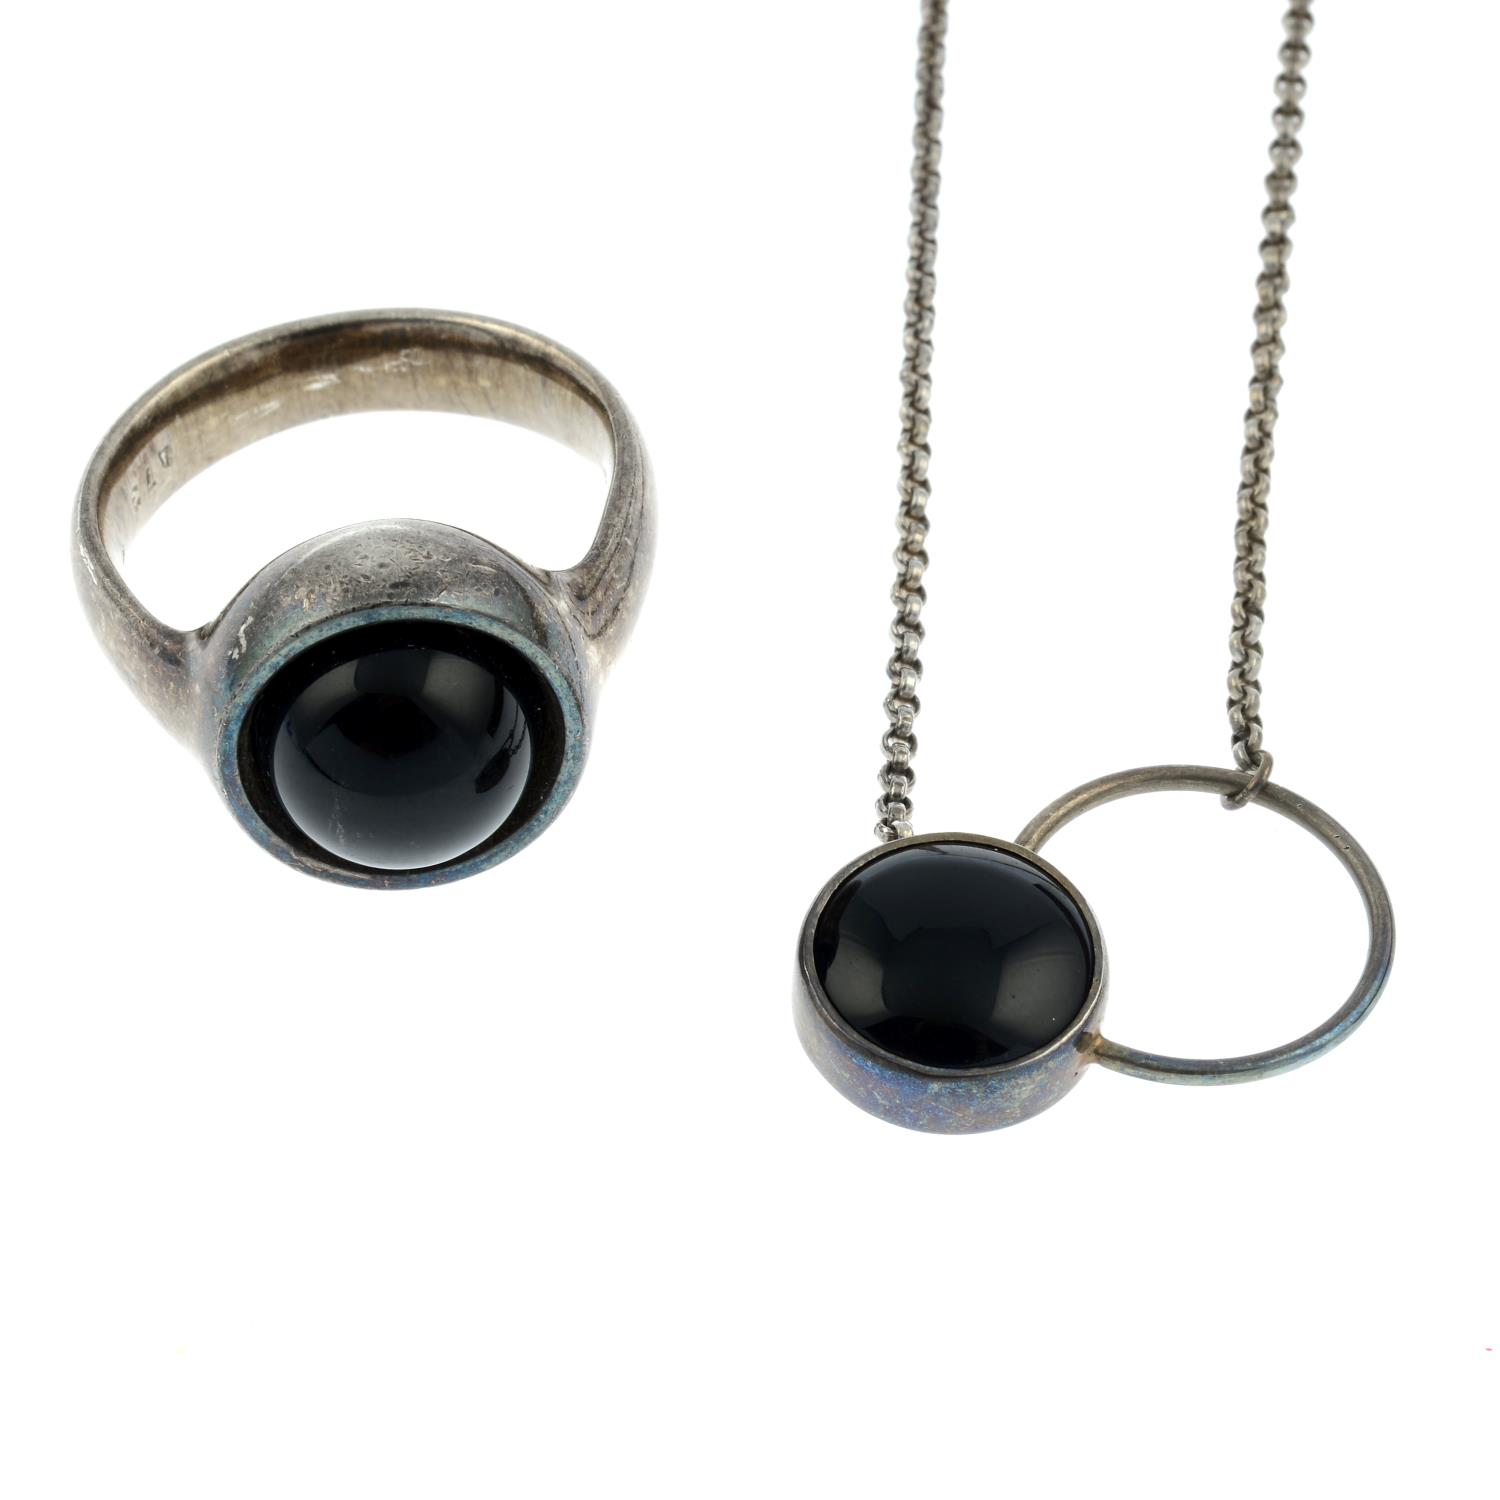 An onyx ring and necklace, by Georg Jensen.